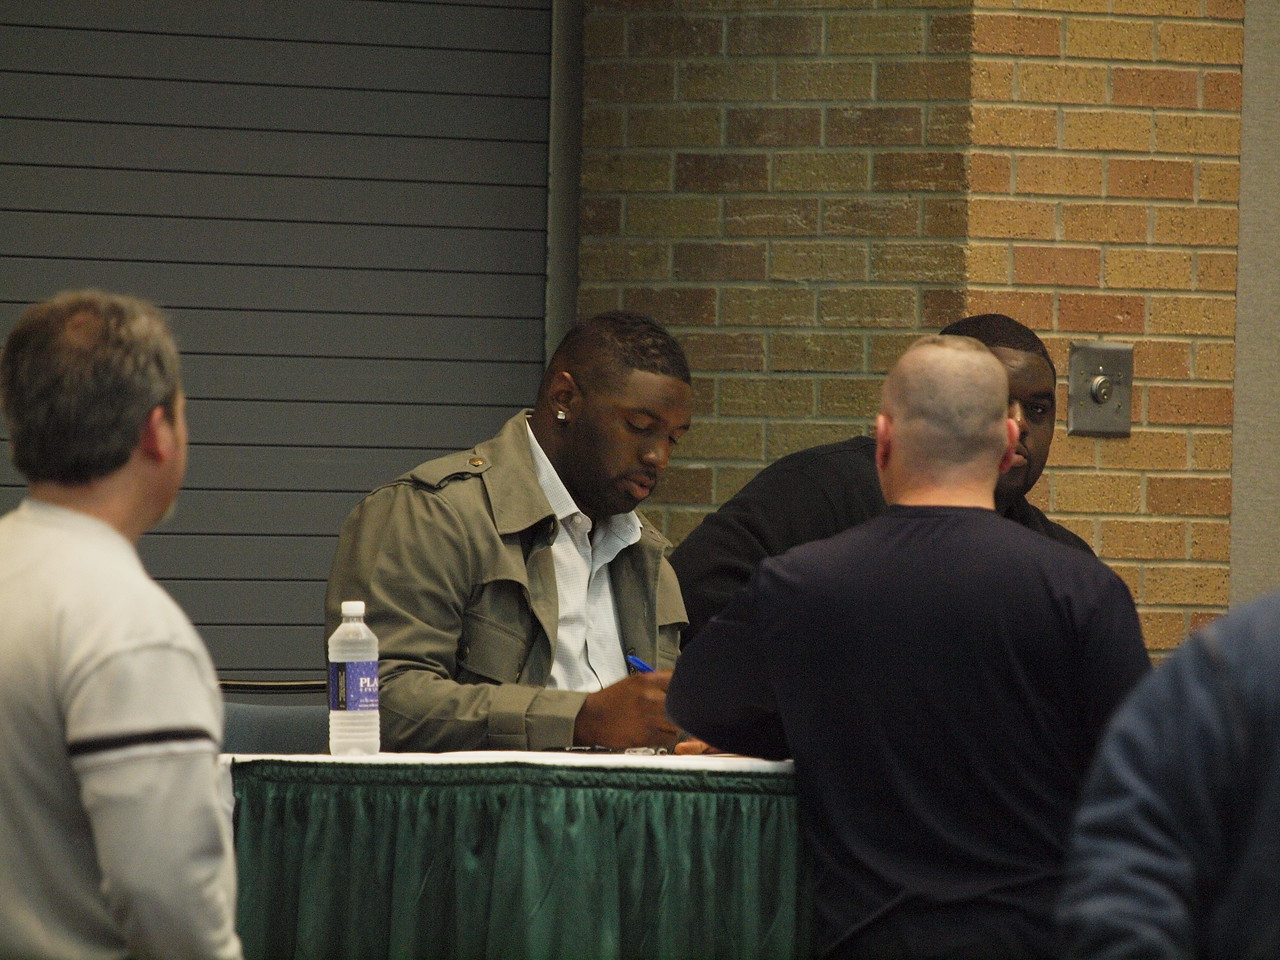 Jay Ratliff of the Dallas Cowboys, signing autographs.